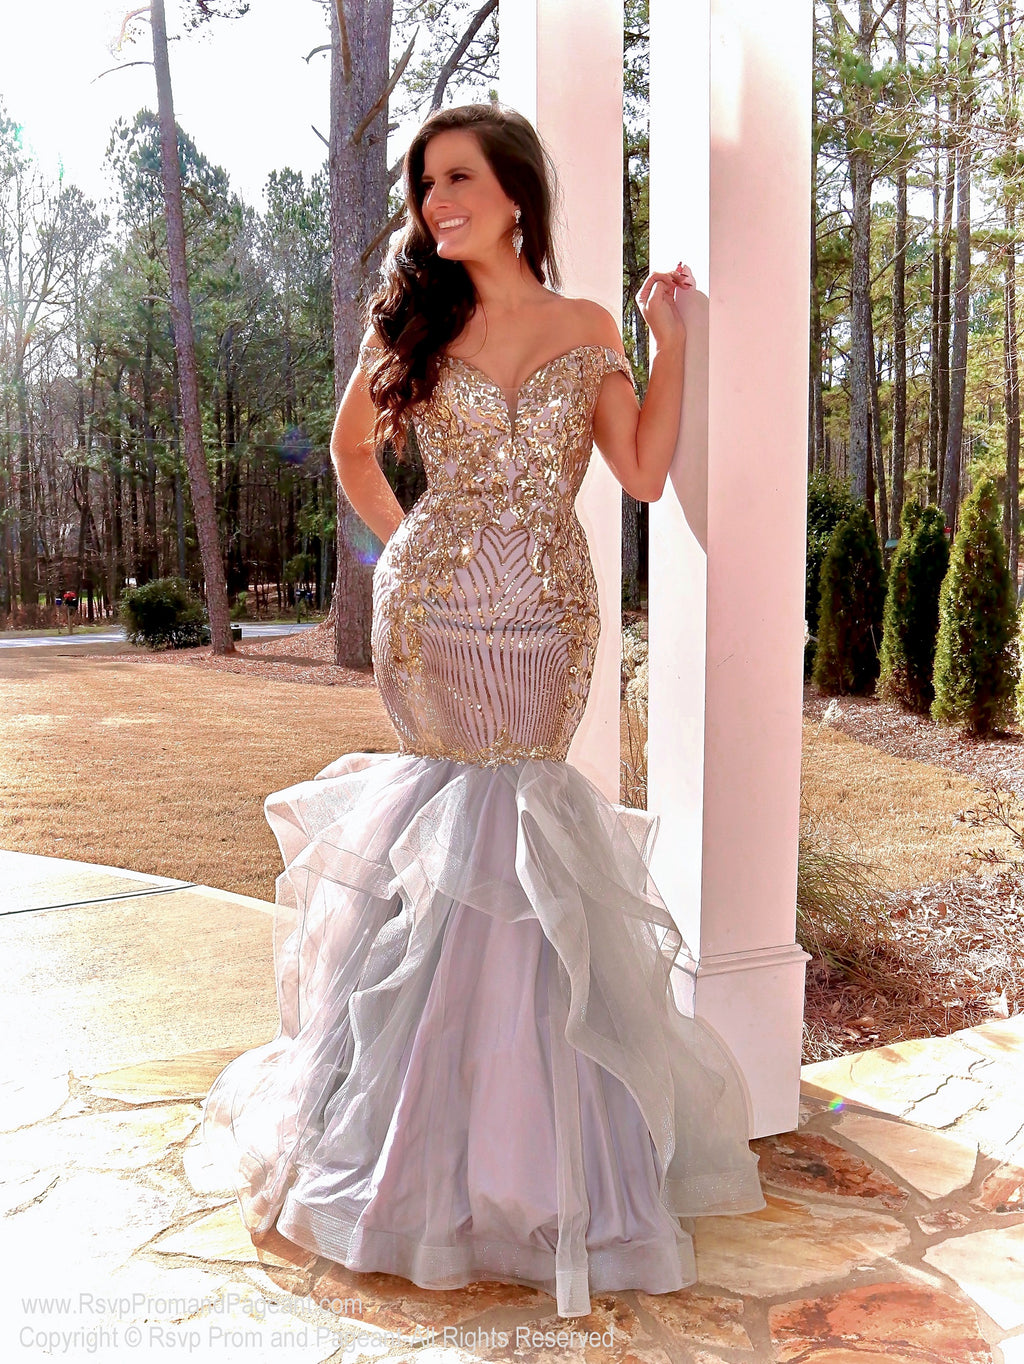 Model looking drop dead gorgeous in this spectacular off the shoulder sequin Silver/Gold mermaid gown!! And it's at Rsvp Prom and Pageant, your source for the HOTTEST Prom and Pageant Dresses and Exclusive Evening Gowns and located in Atlanta, Georgia!